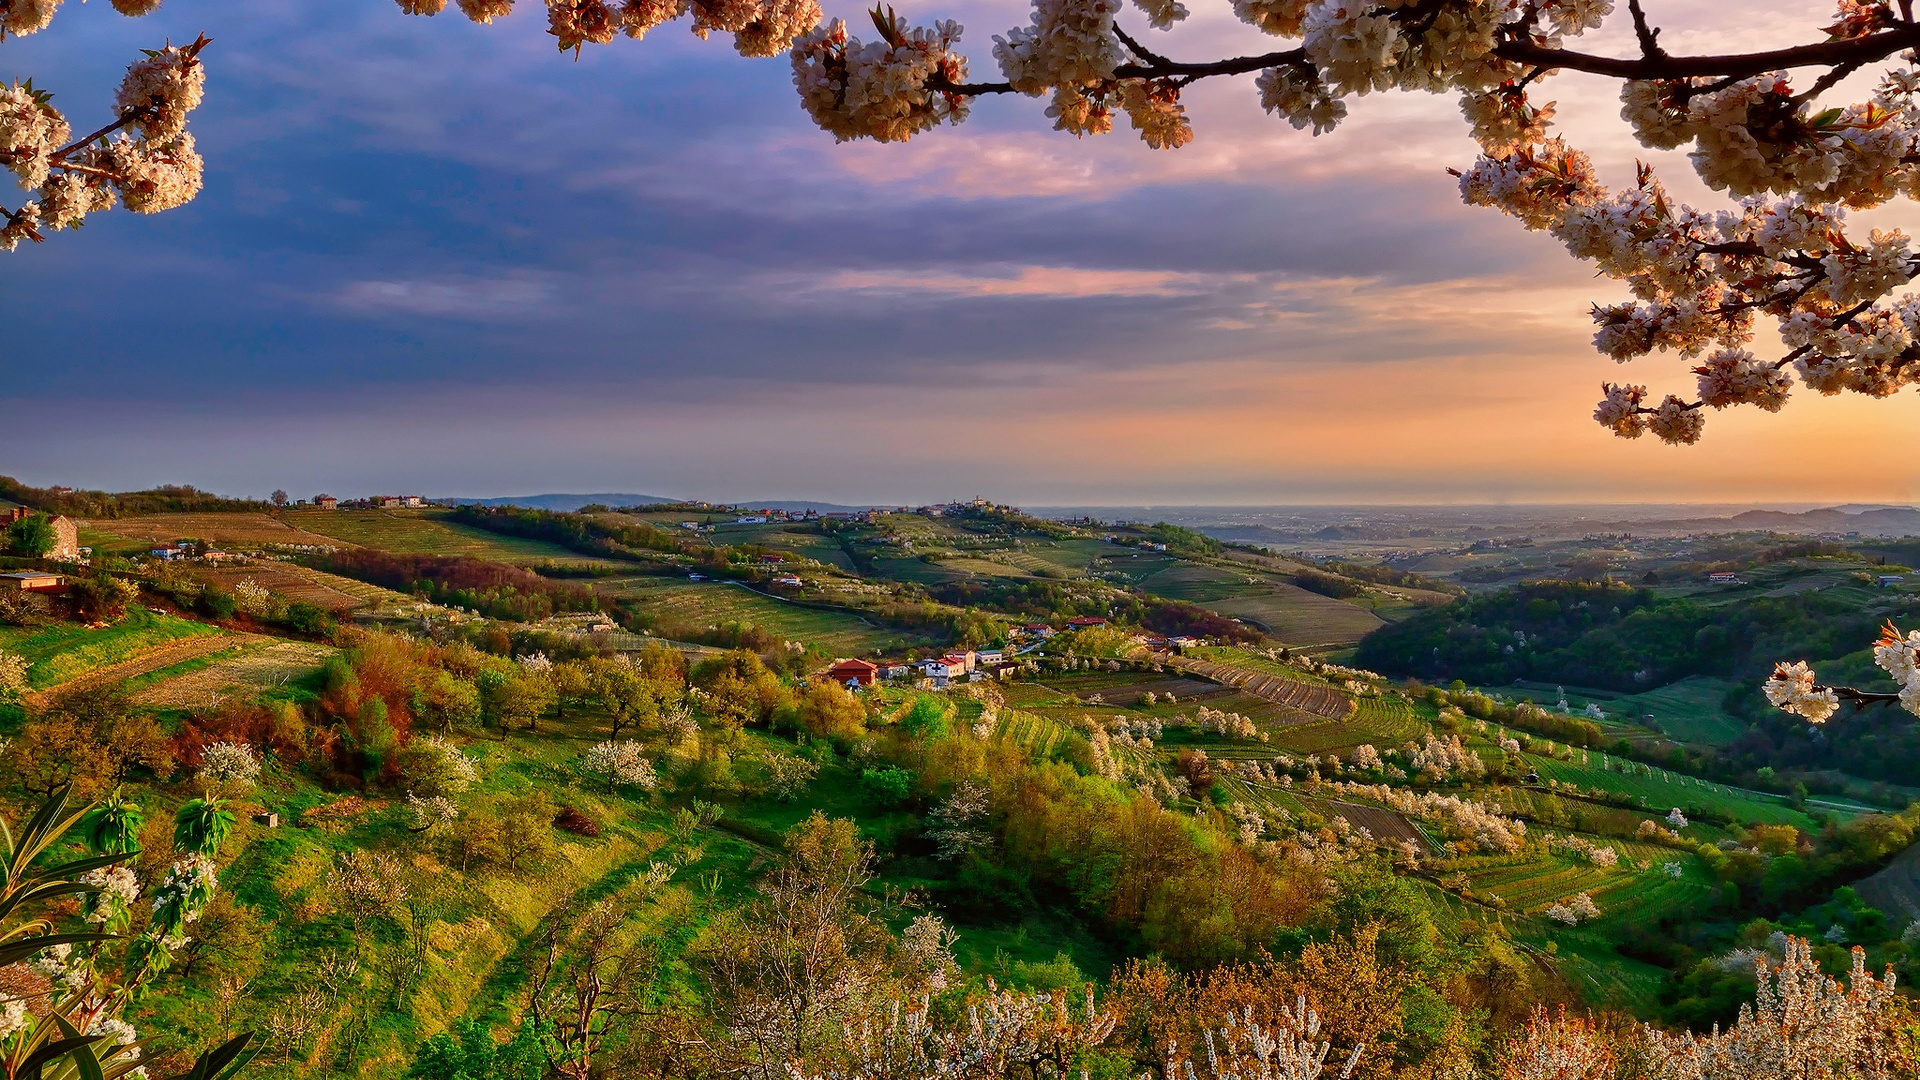 Wallpaper Italy Lombardy Collio At Spring Valley Dusk Flowers